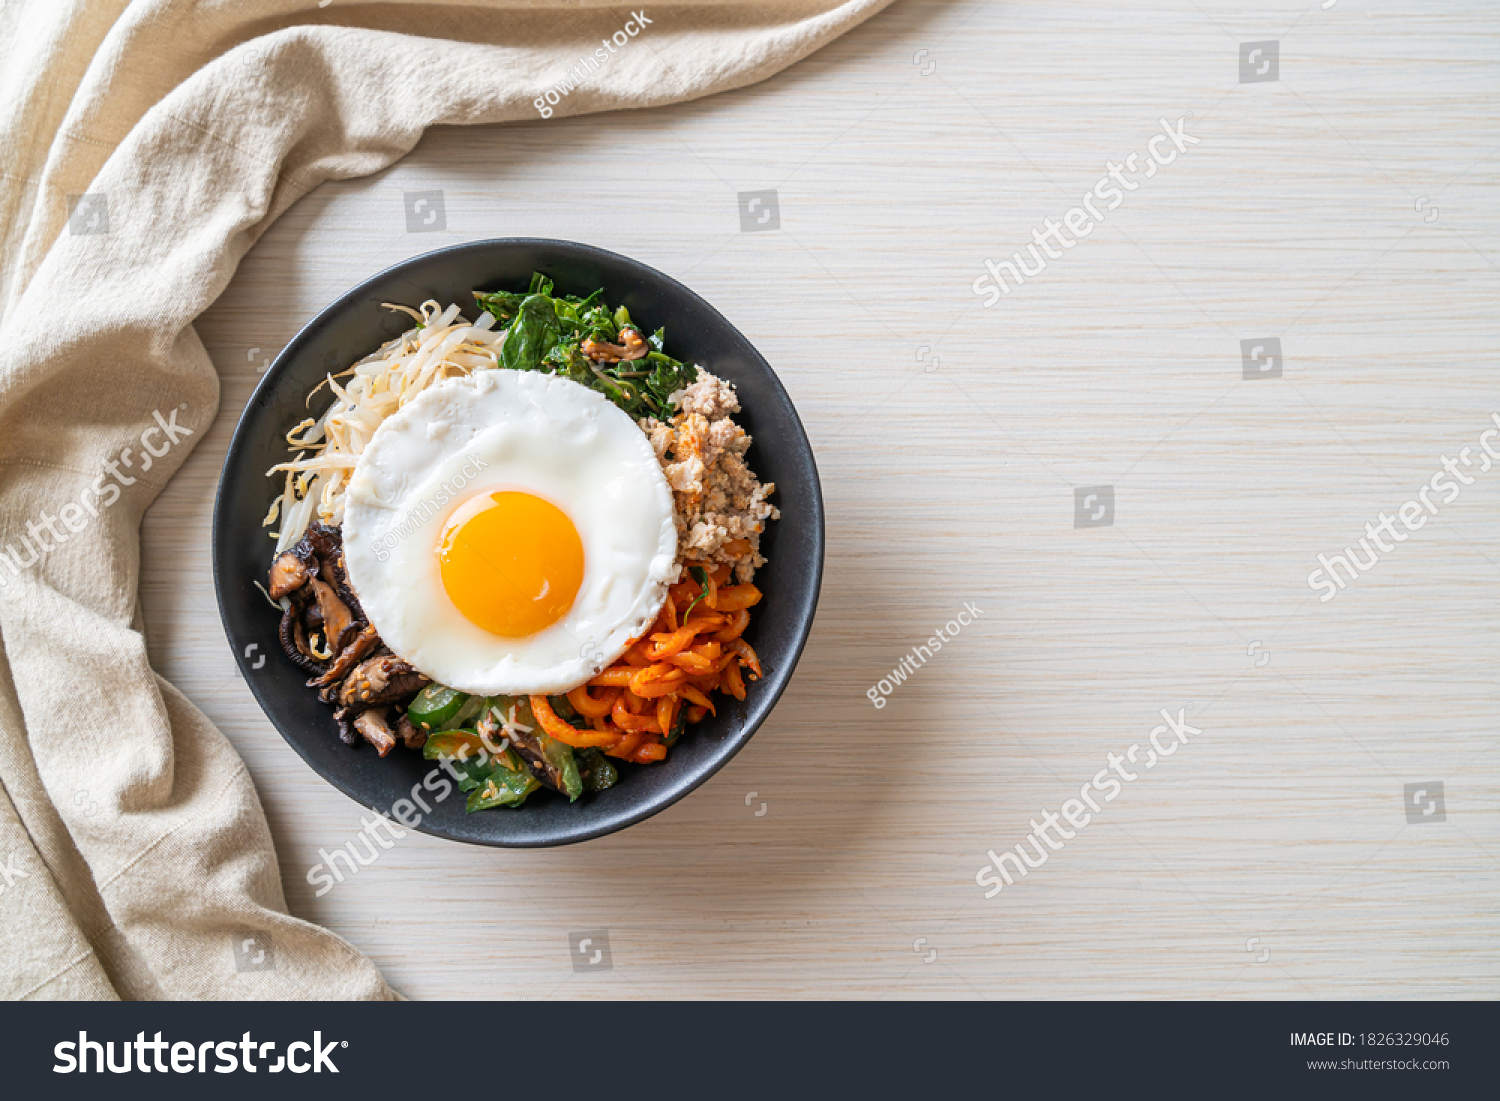 Bibimbap, Korean spicy salad with rice and fried egg - traditionally Korean food style #1826329046